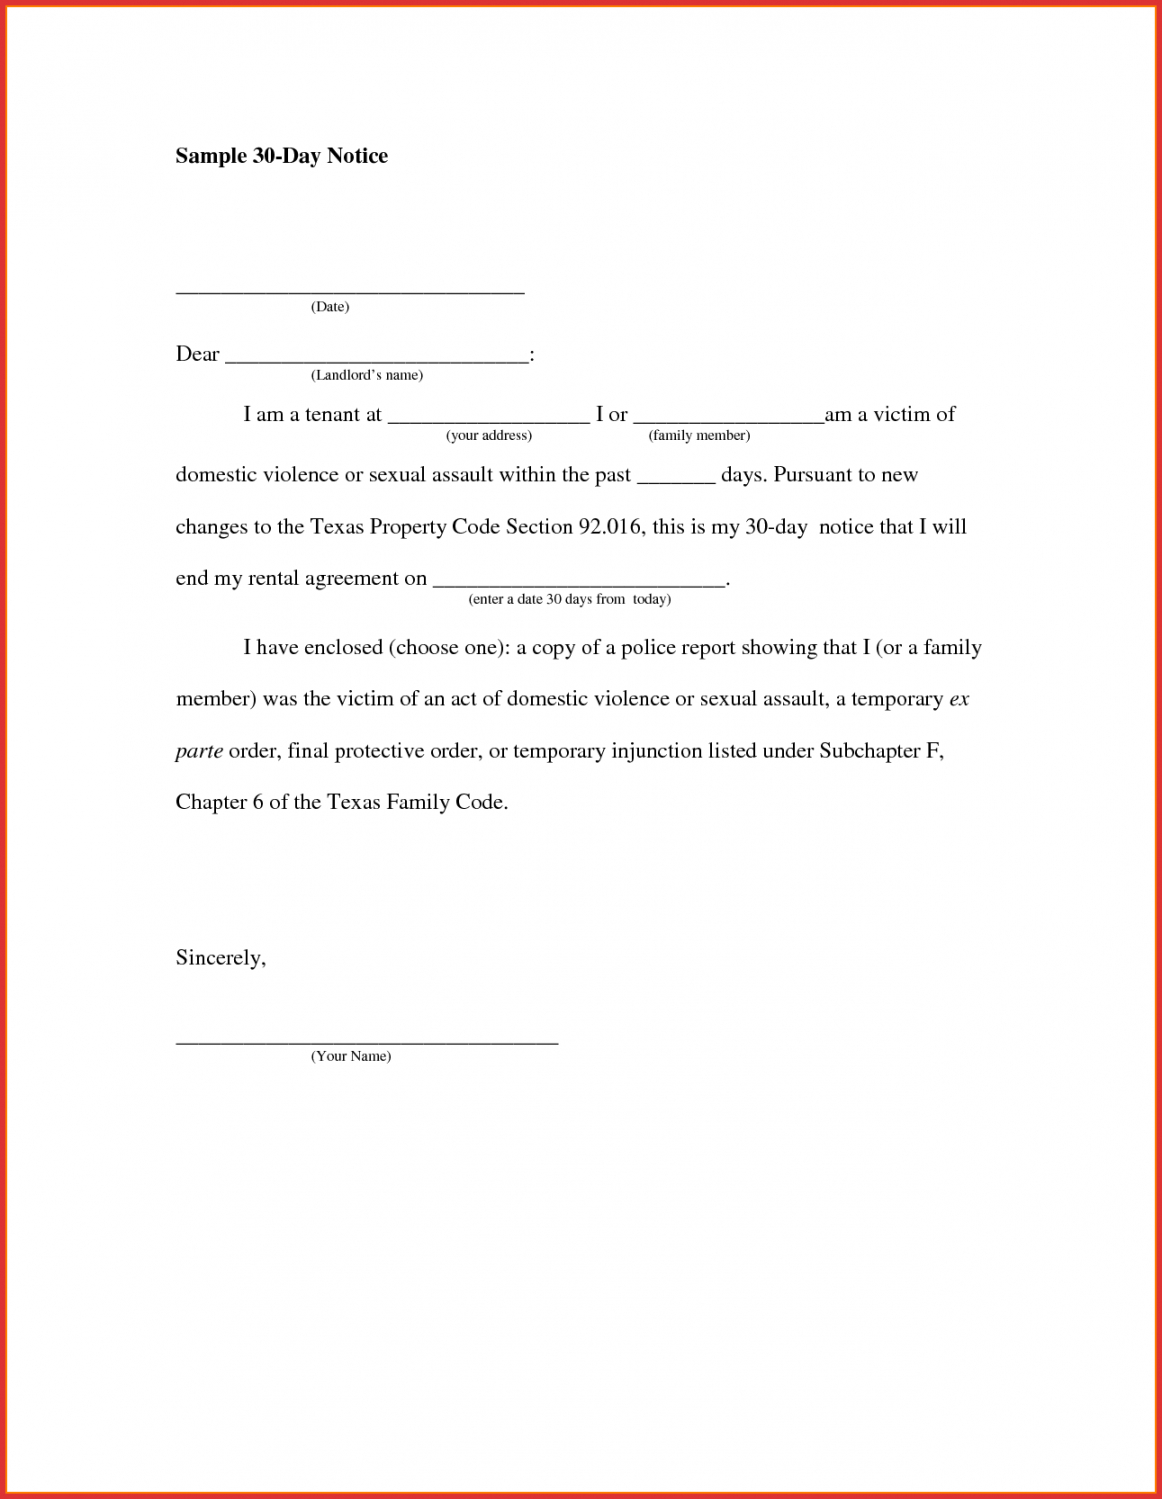 awesome 30 day notice sample  job latter sample 30 day notice to landlord template word